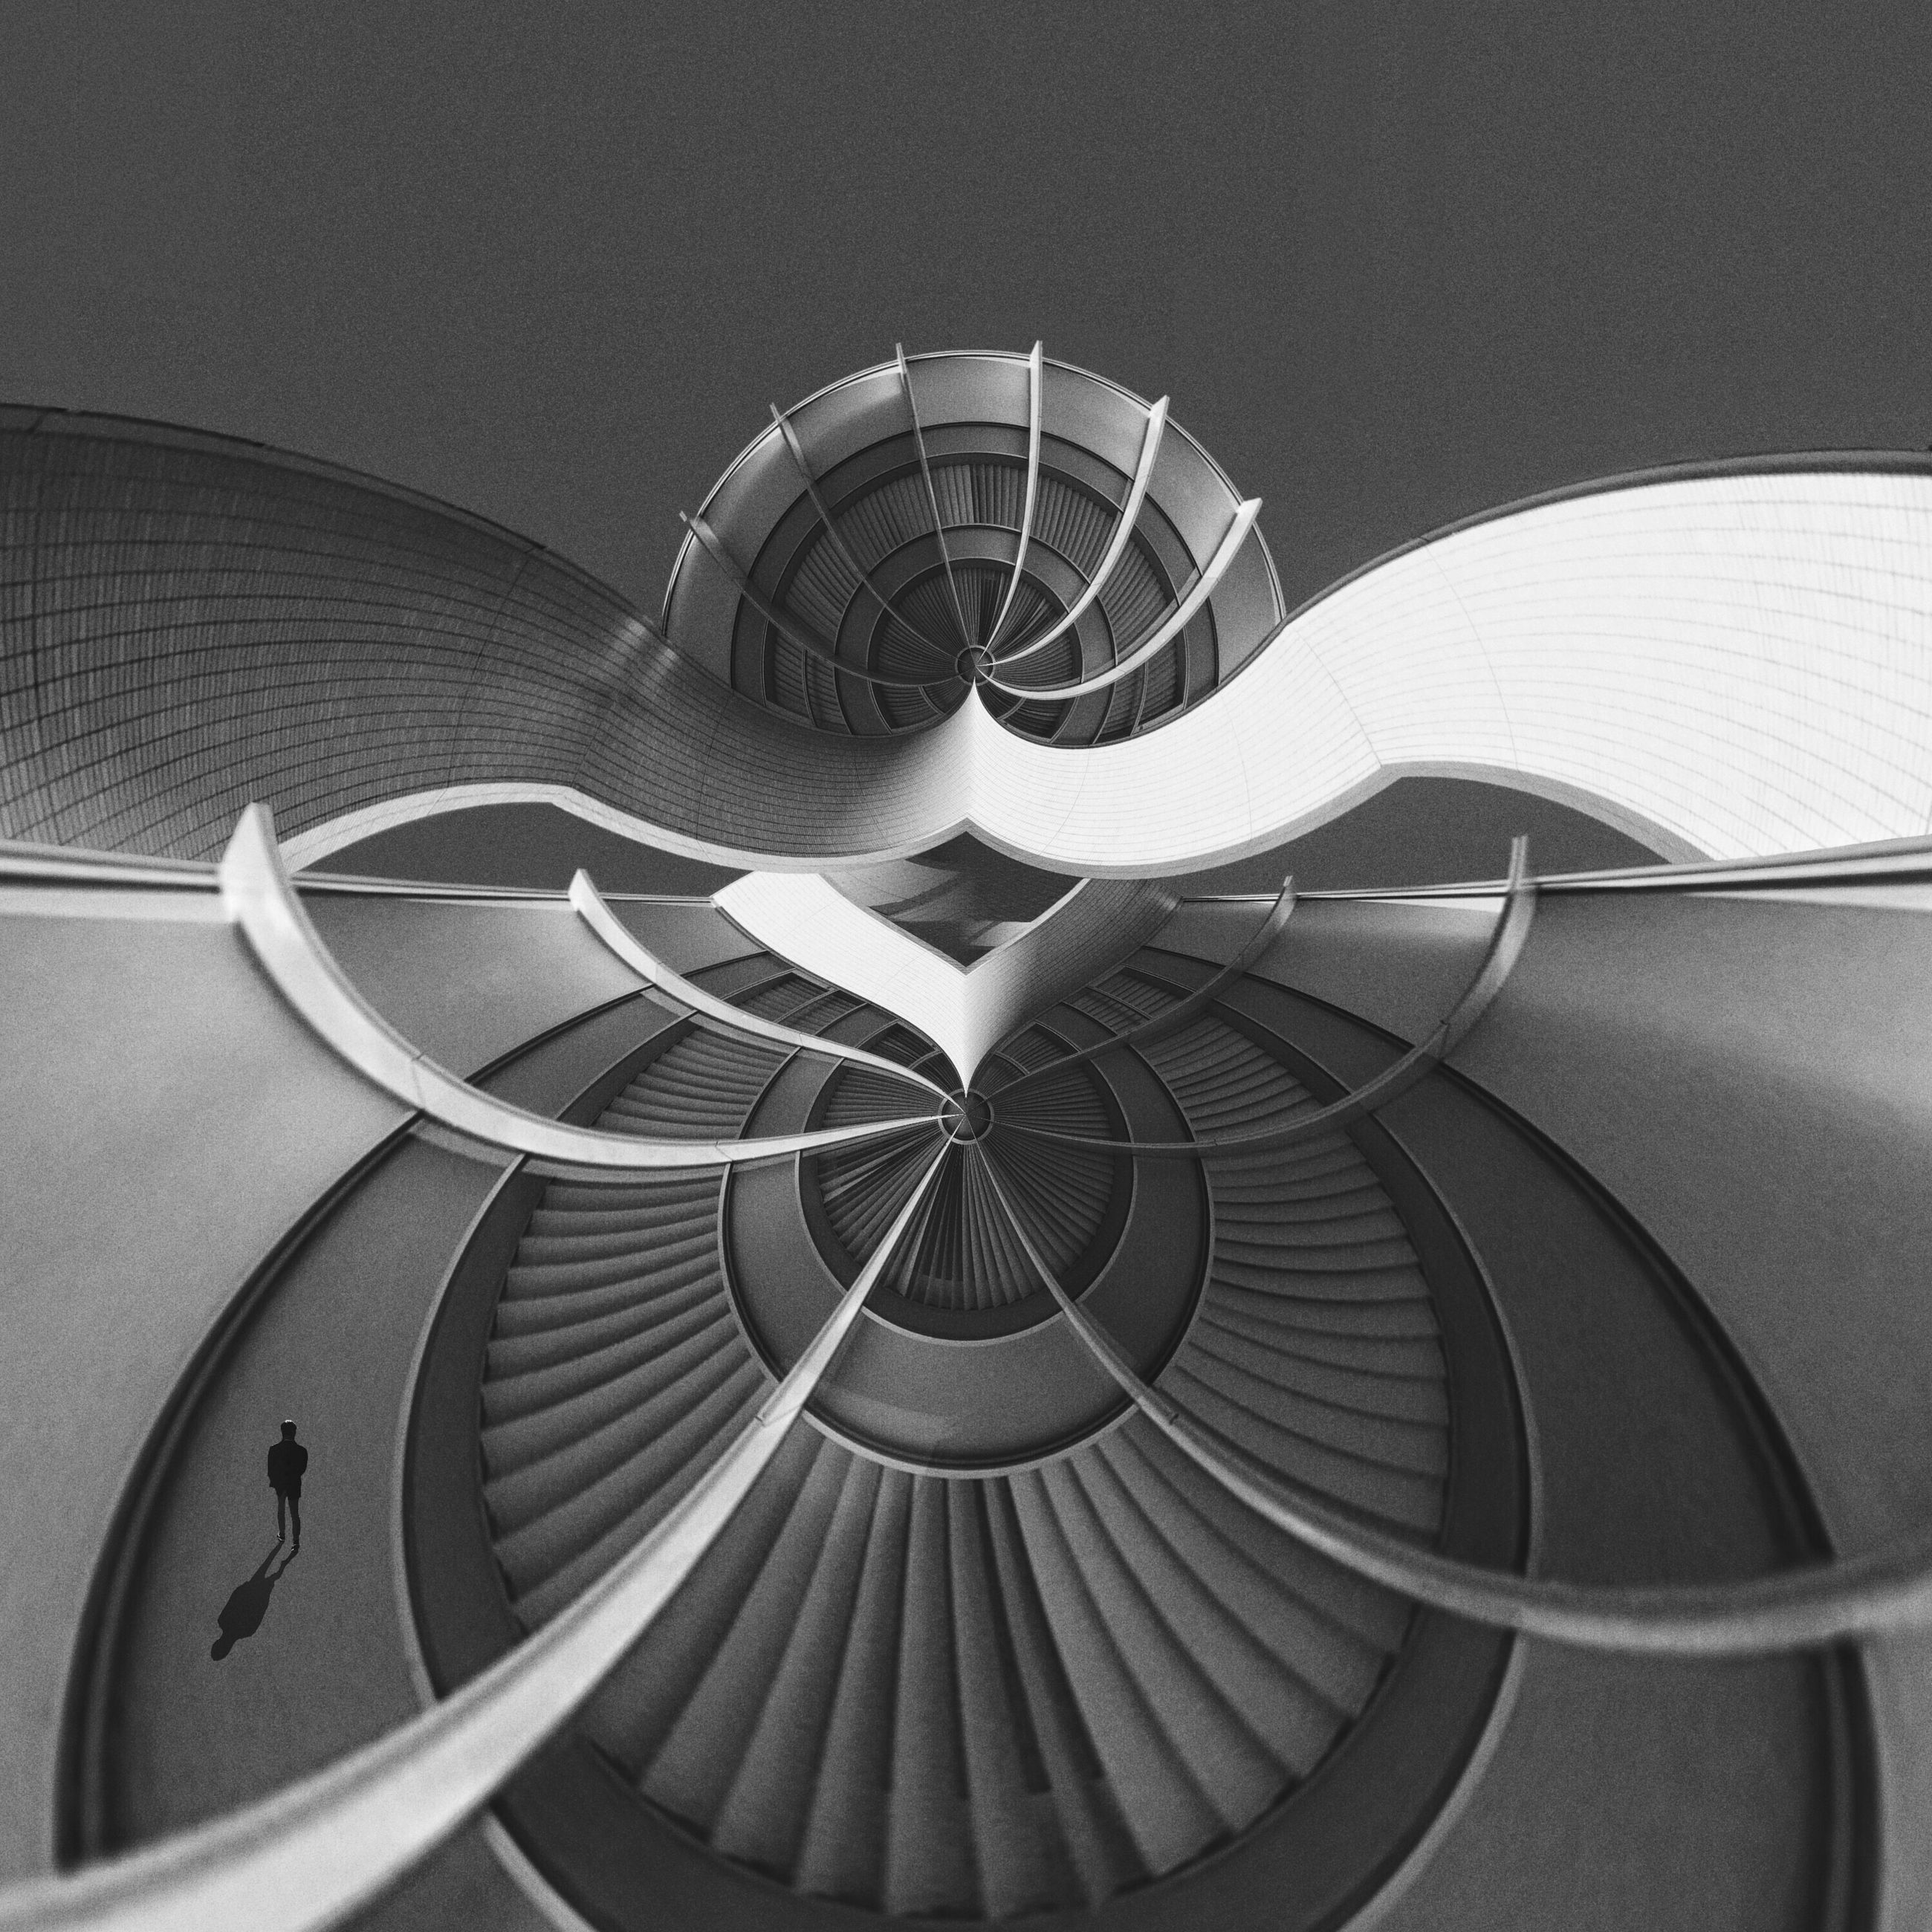 architecture, built structure, steps and staircases, steps, staircase, spiral, railing, building exterior, spiral staircase, pattern, indoors, low angle view, design, building, circle, modern, repetition, high angle view, metal, no people